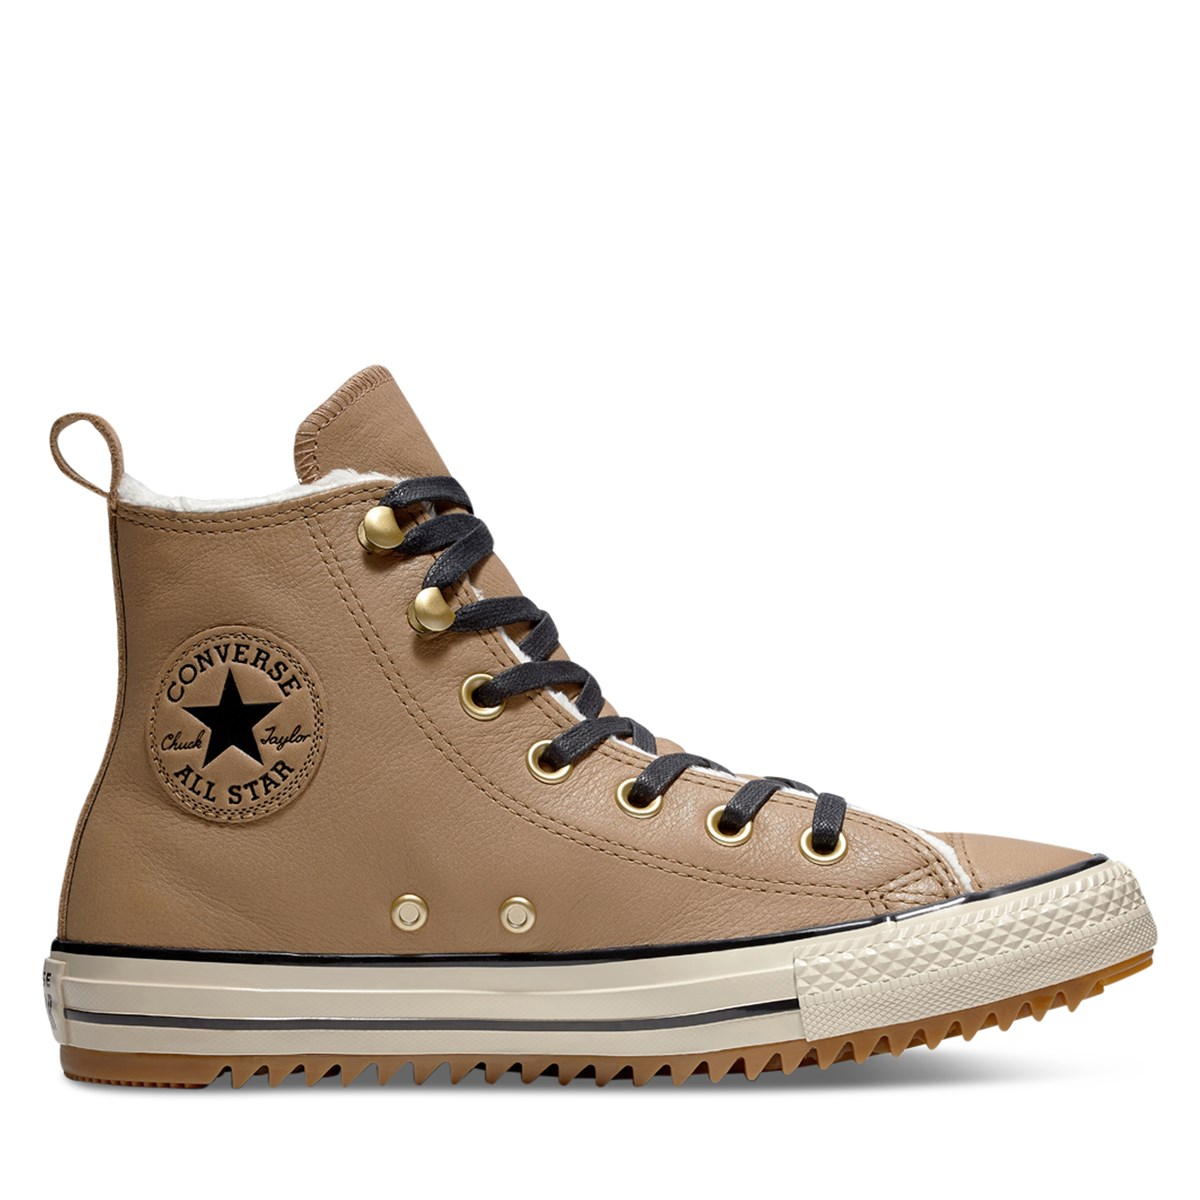 Chuck Taylor All Star Hiker Boots in Beige